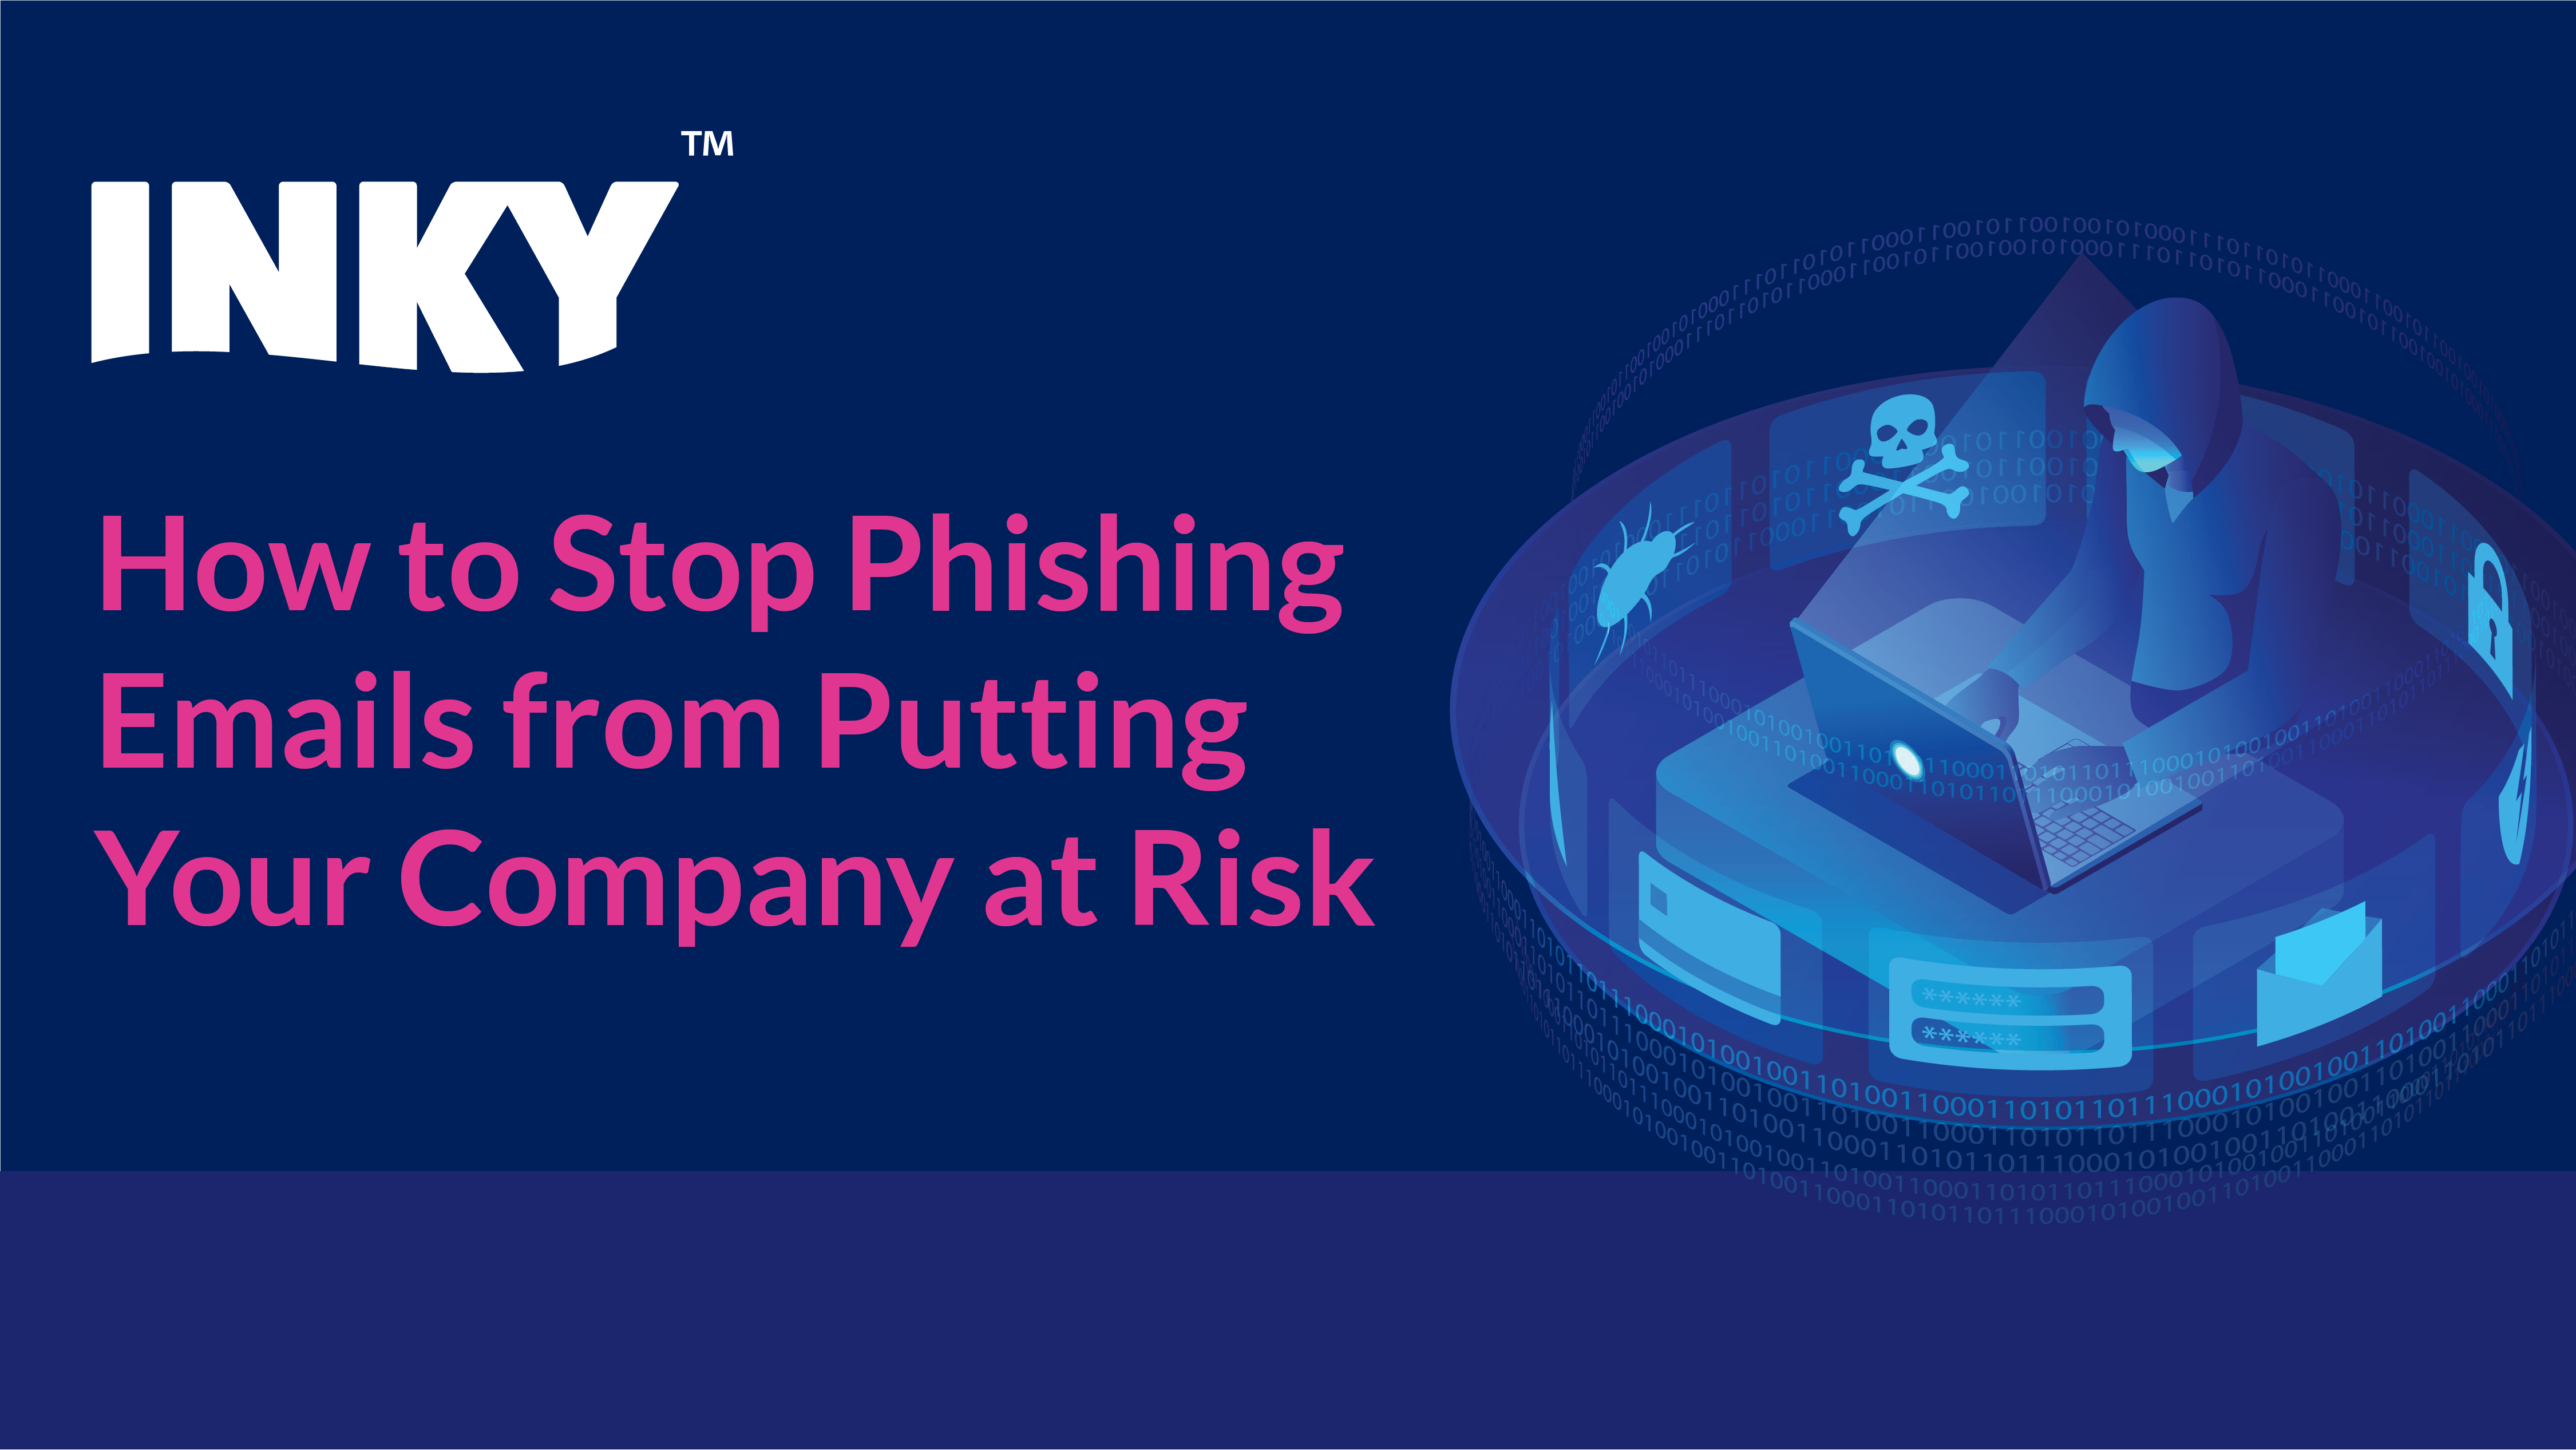 phishing-emails-putting-company-at-risk